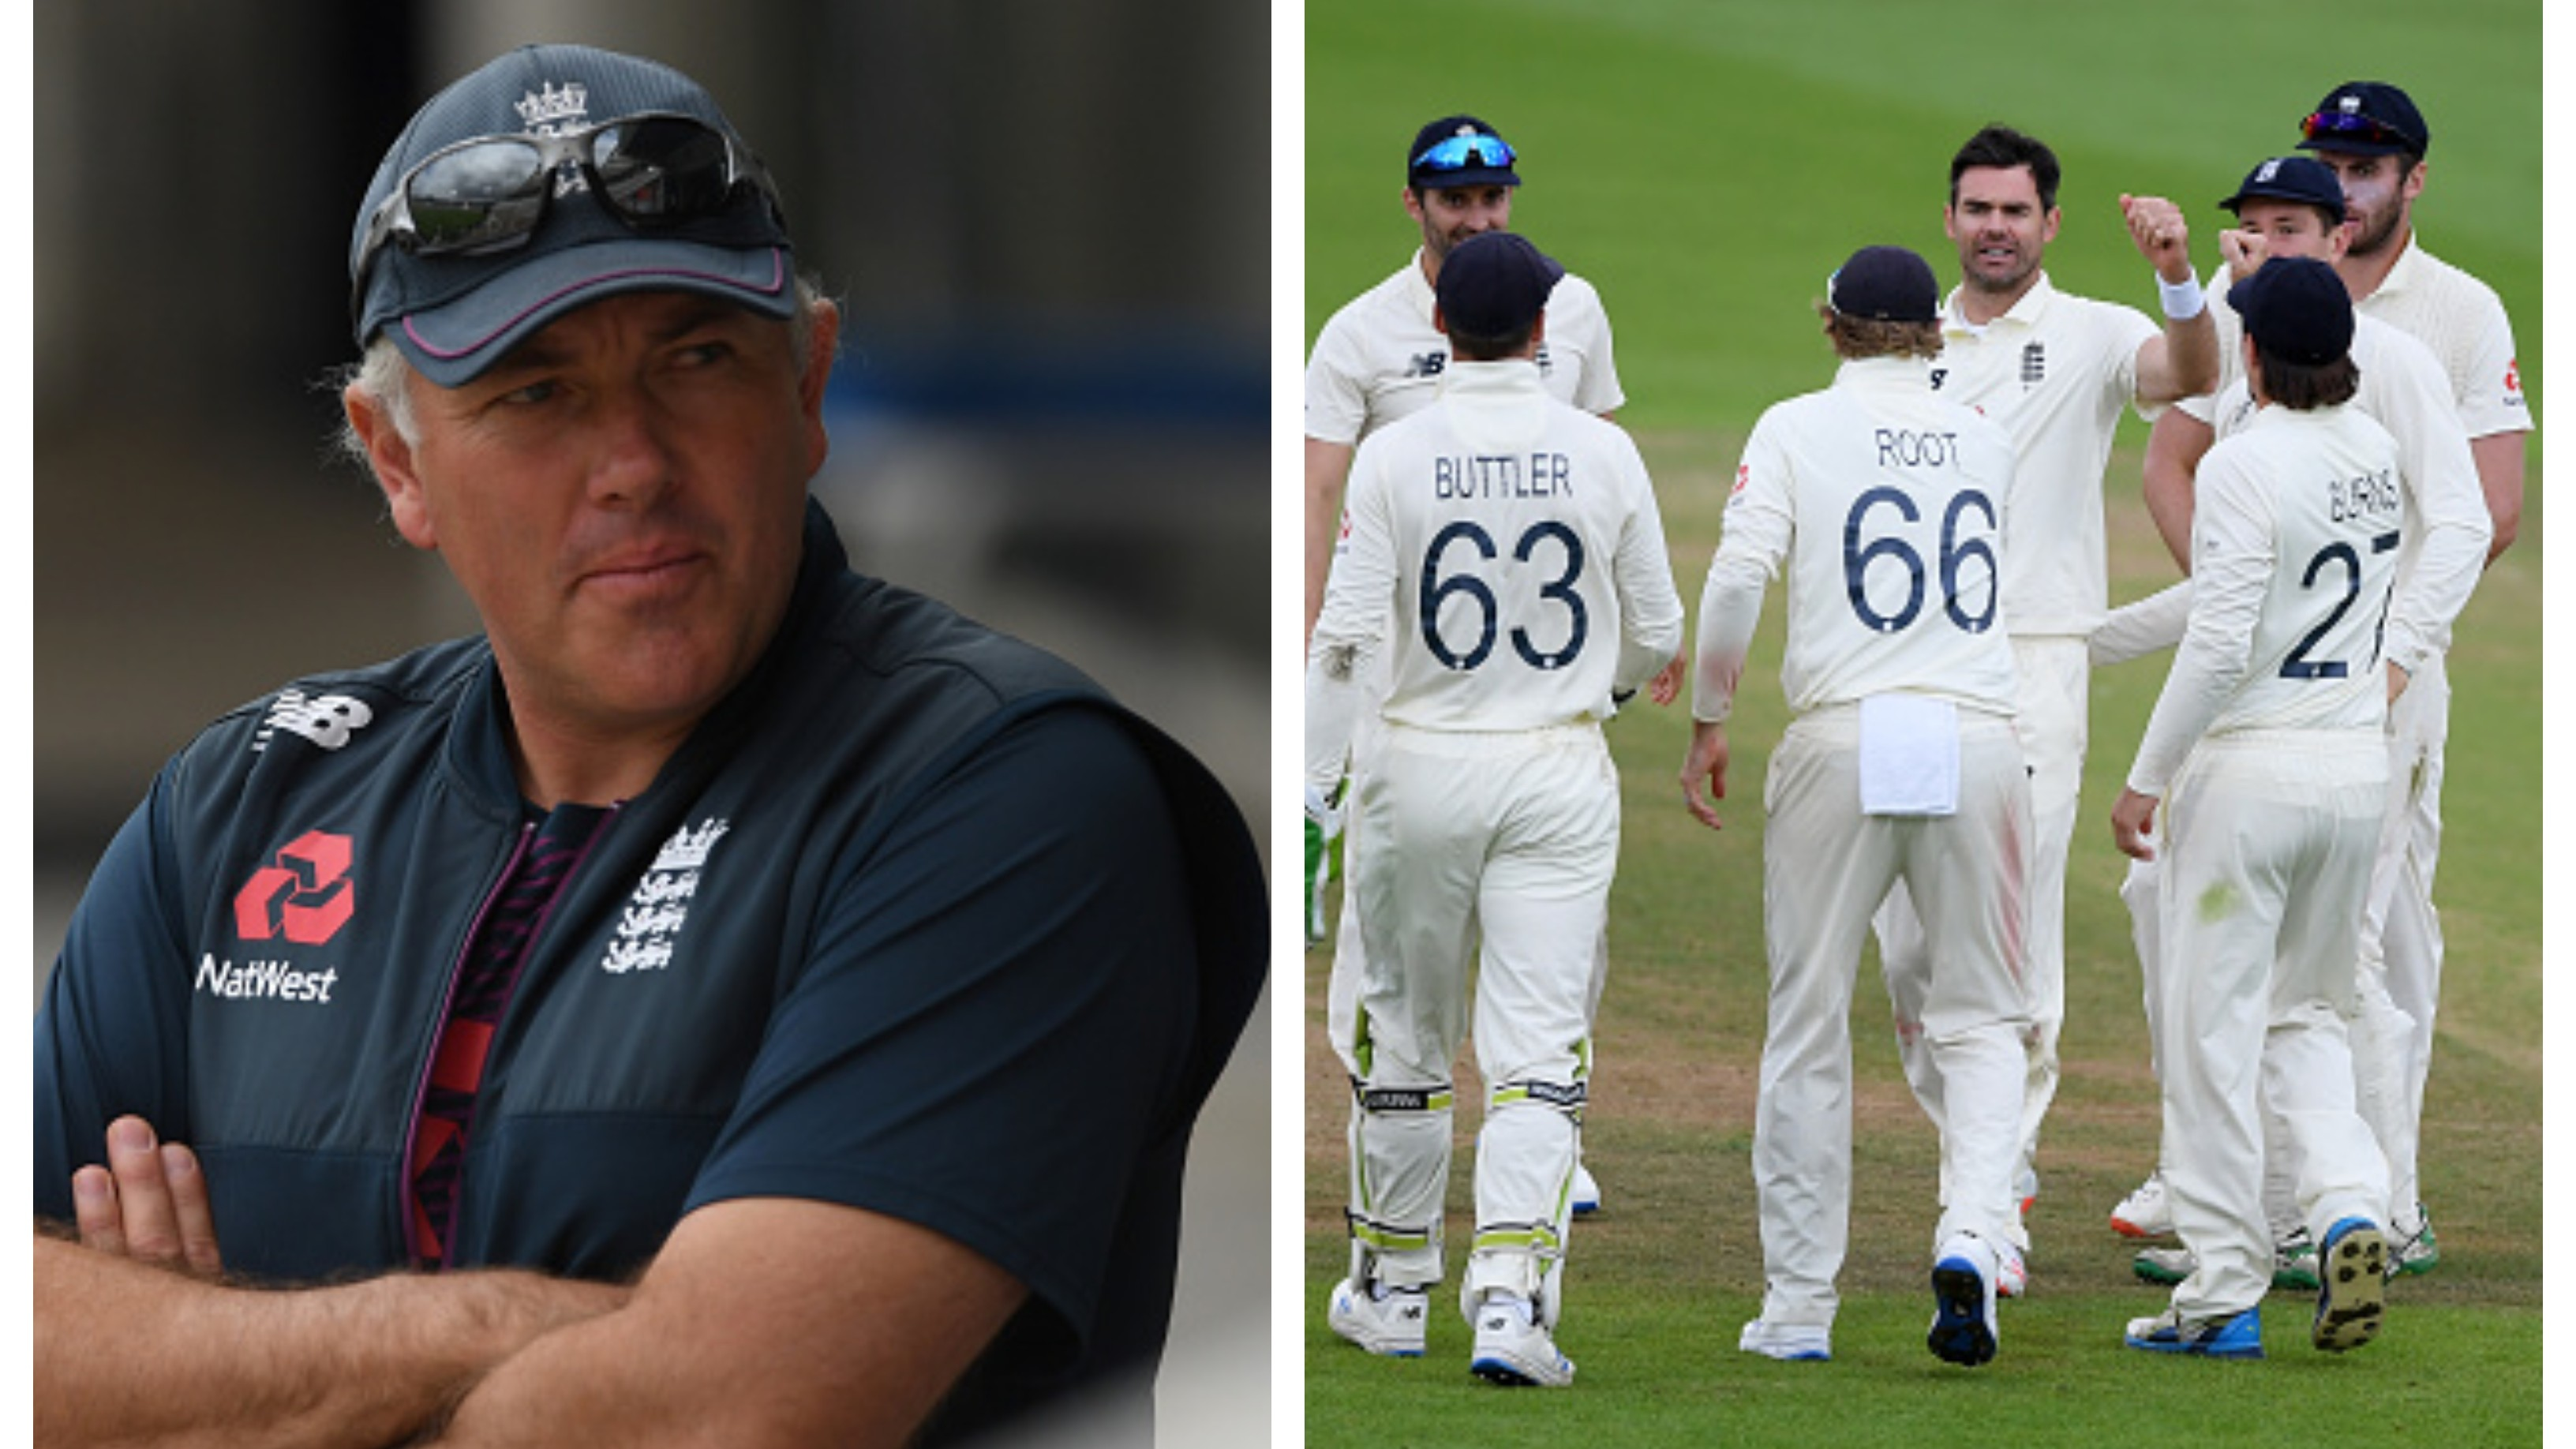 ENG v PAK 2020: Silverwood wants England to finish strong, see Anderson get No.600 in Southampton